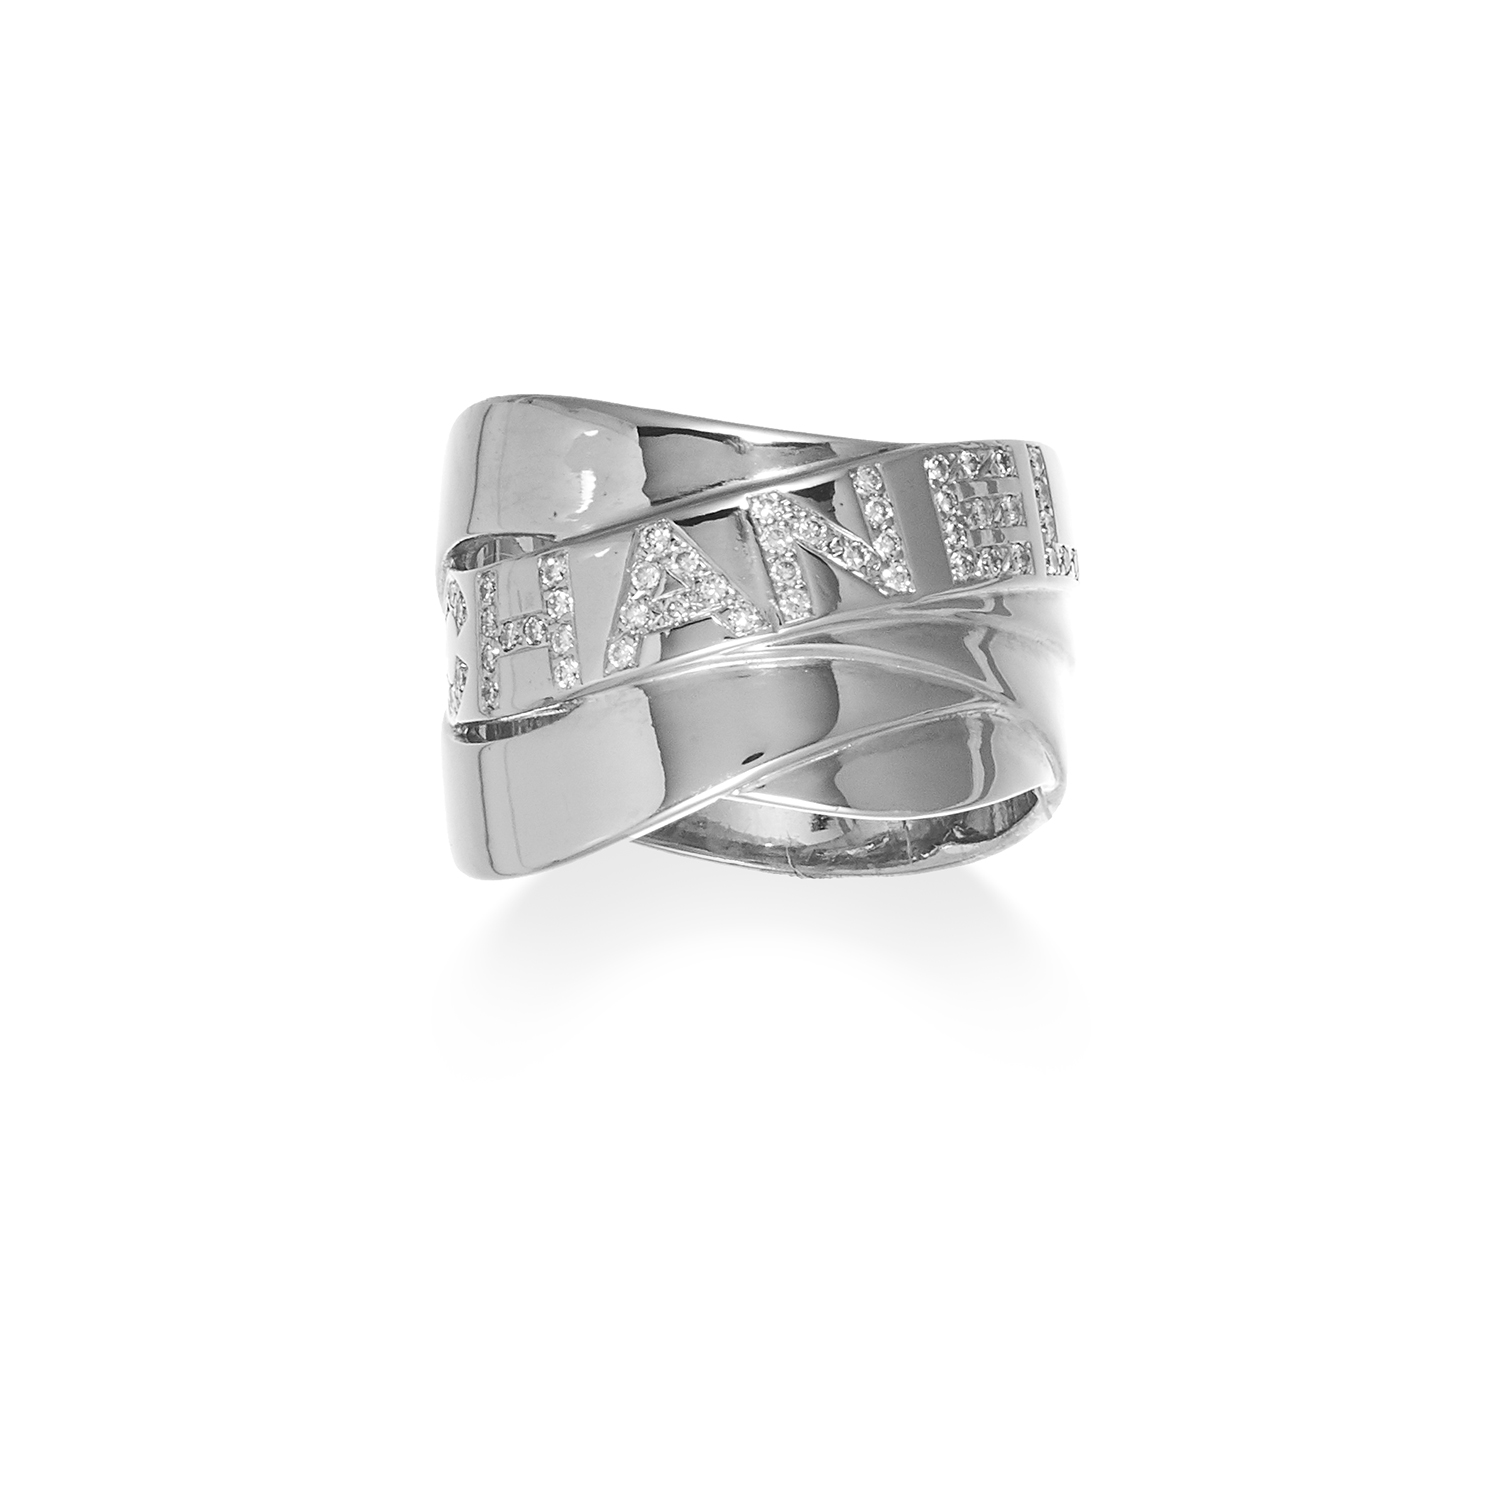 Los 5 - A DIAMOND BAND RING, CHANEL in 18ct white gold, designed as a trio of overlapping bands, signed